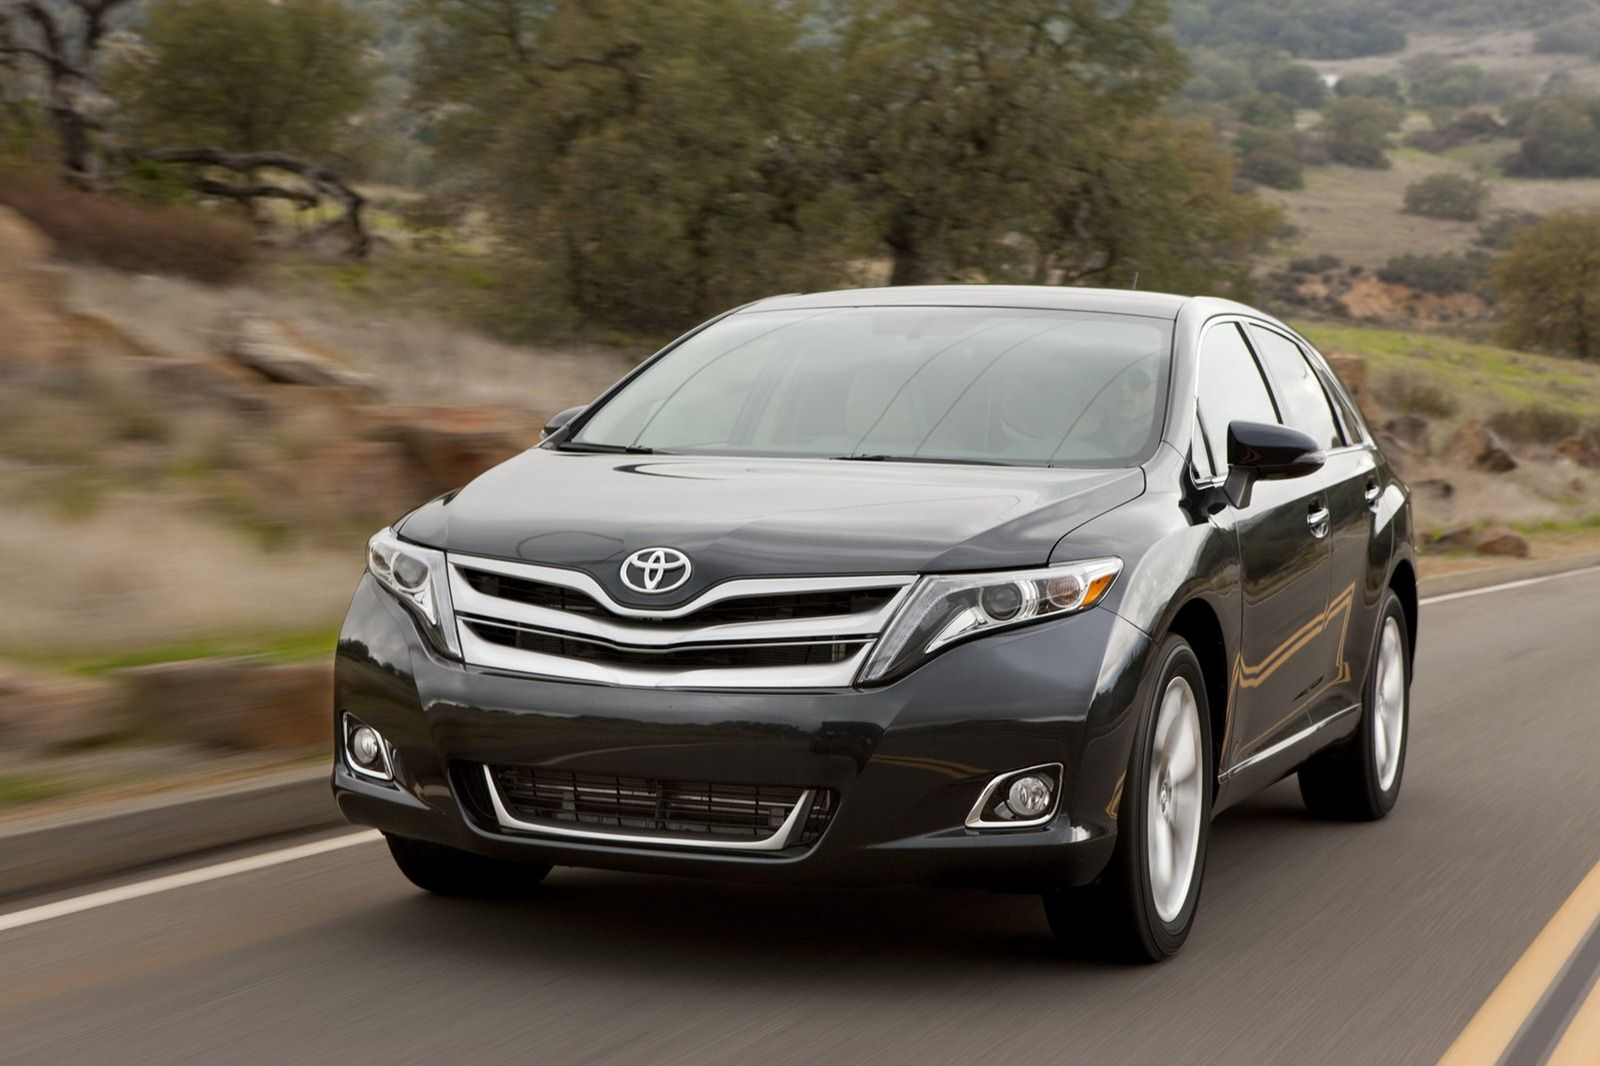 2013 toyota venza black front view on street